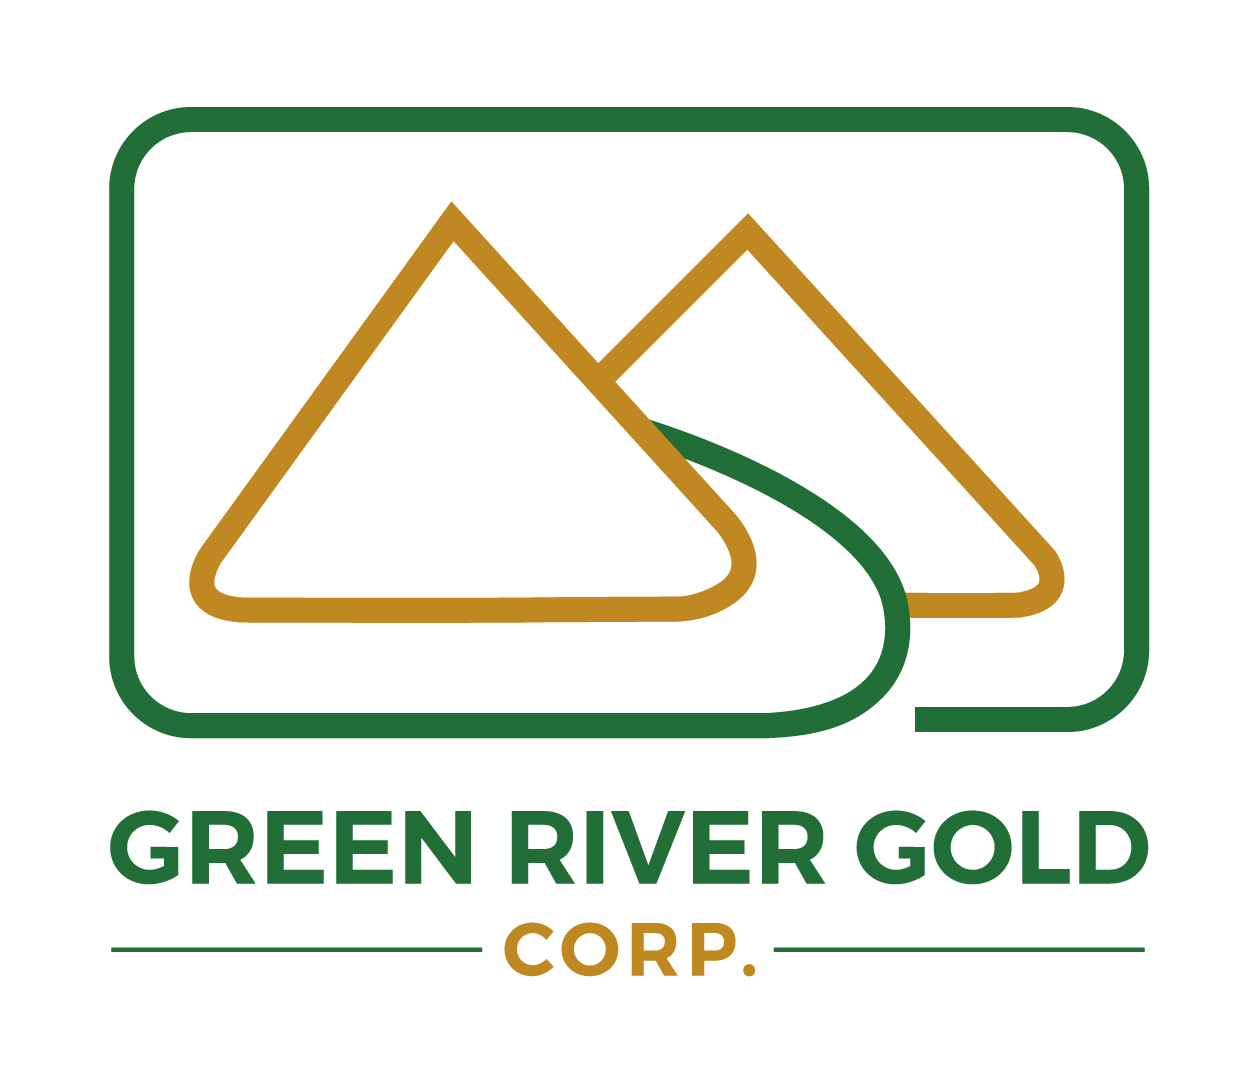 Green River Gold Corp.